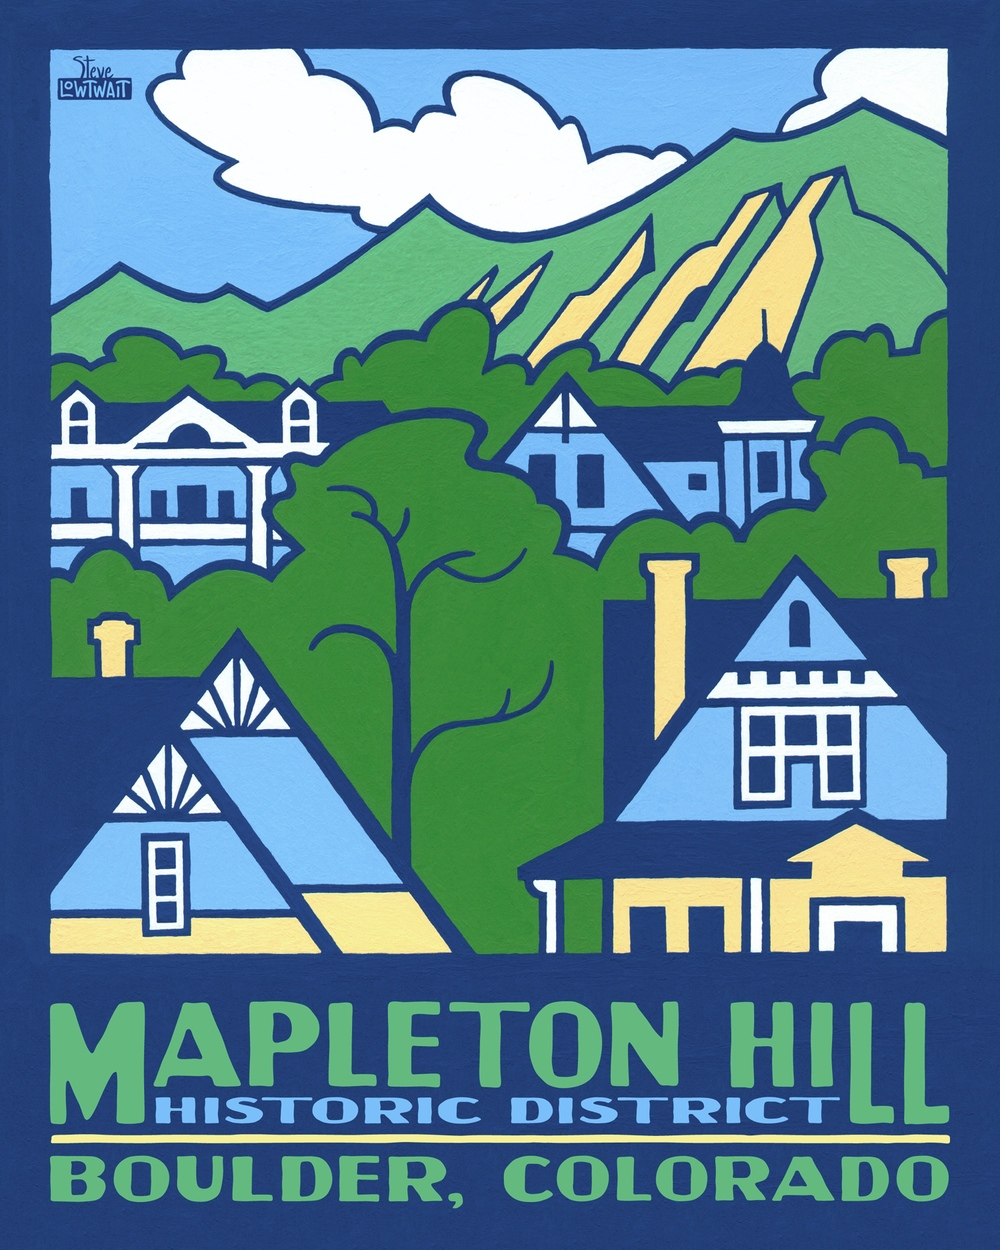 Mapleton Hill - Boulder, Colorado • Buy